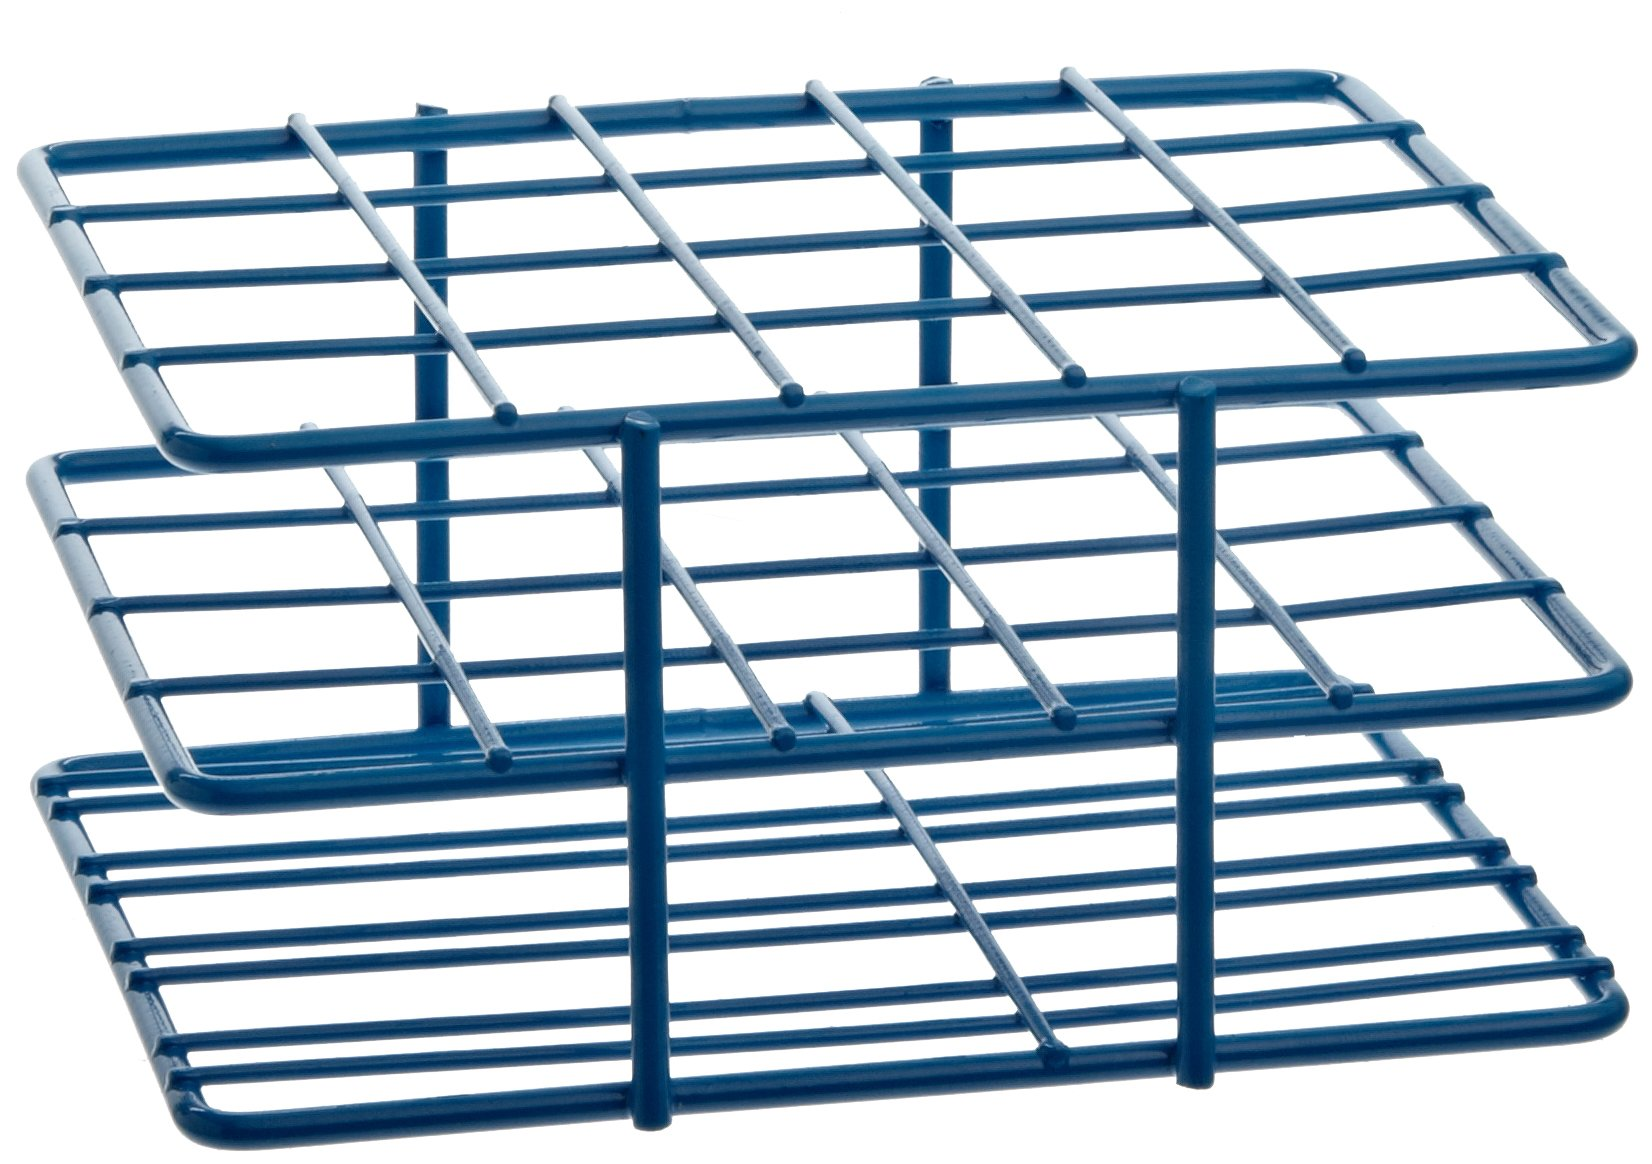 "Bel-Art F18788-2001 Poxygrid ""Half-Size"" Test Tube Rack; 18-20mm, 20 Places, 4¹⁵/₁₆ x 4¹/₄ x 2¹/₂ in., Blue"